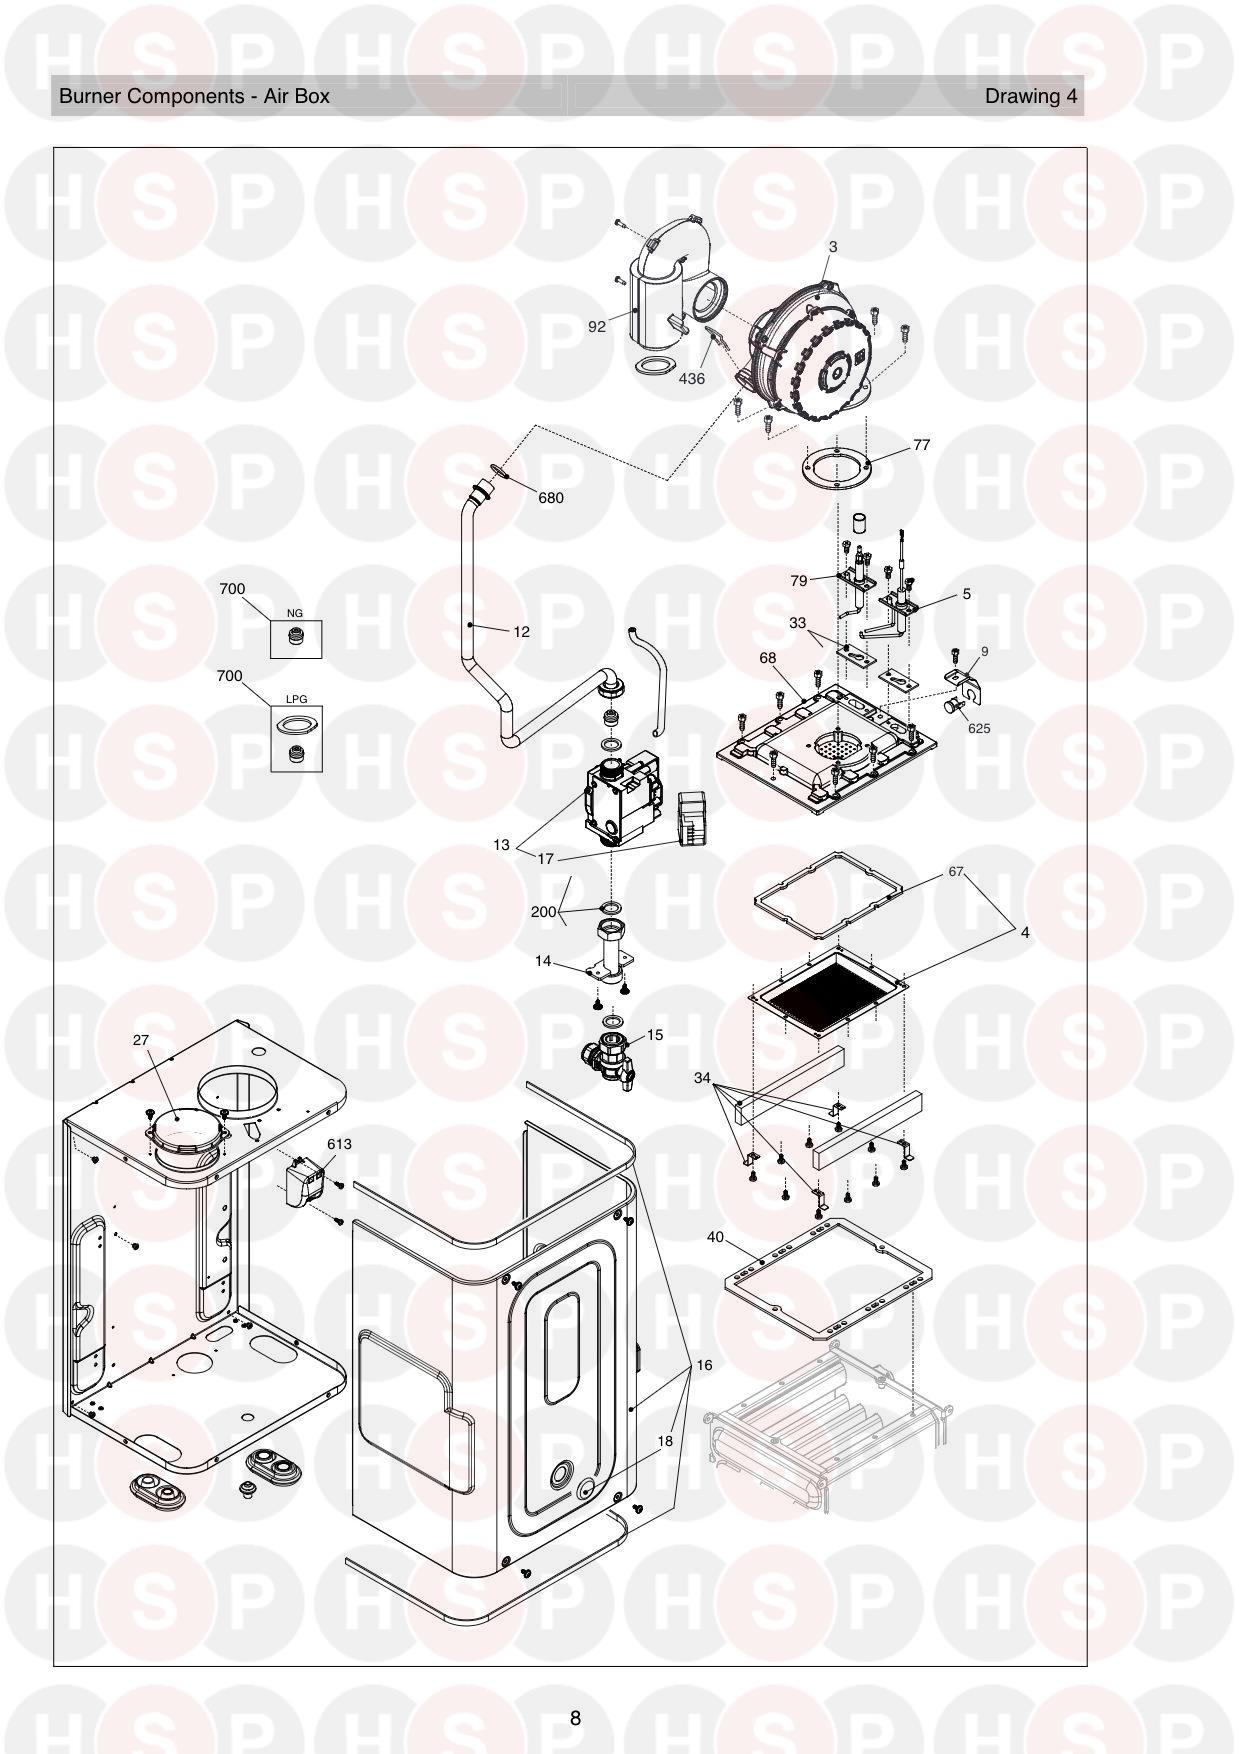 Burner diagram for Vokera Vision 25S ERP Rev 11 (01/2019) LPG